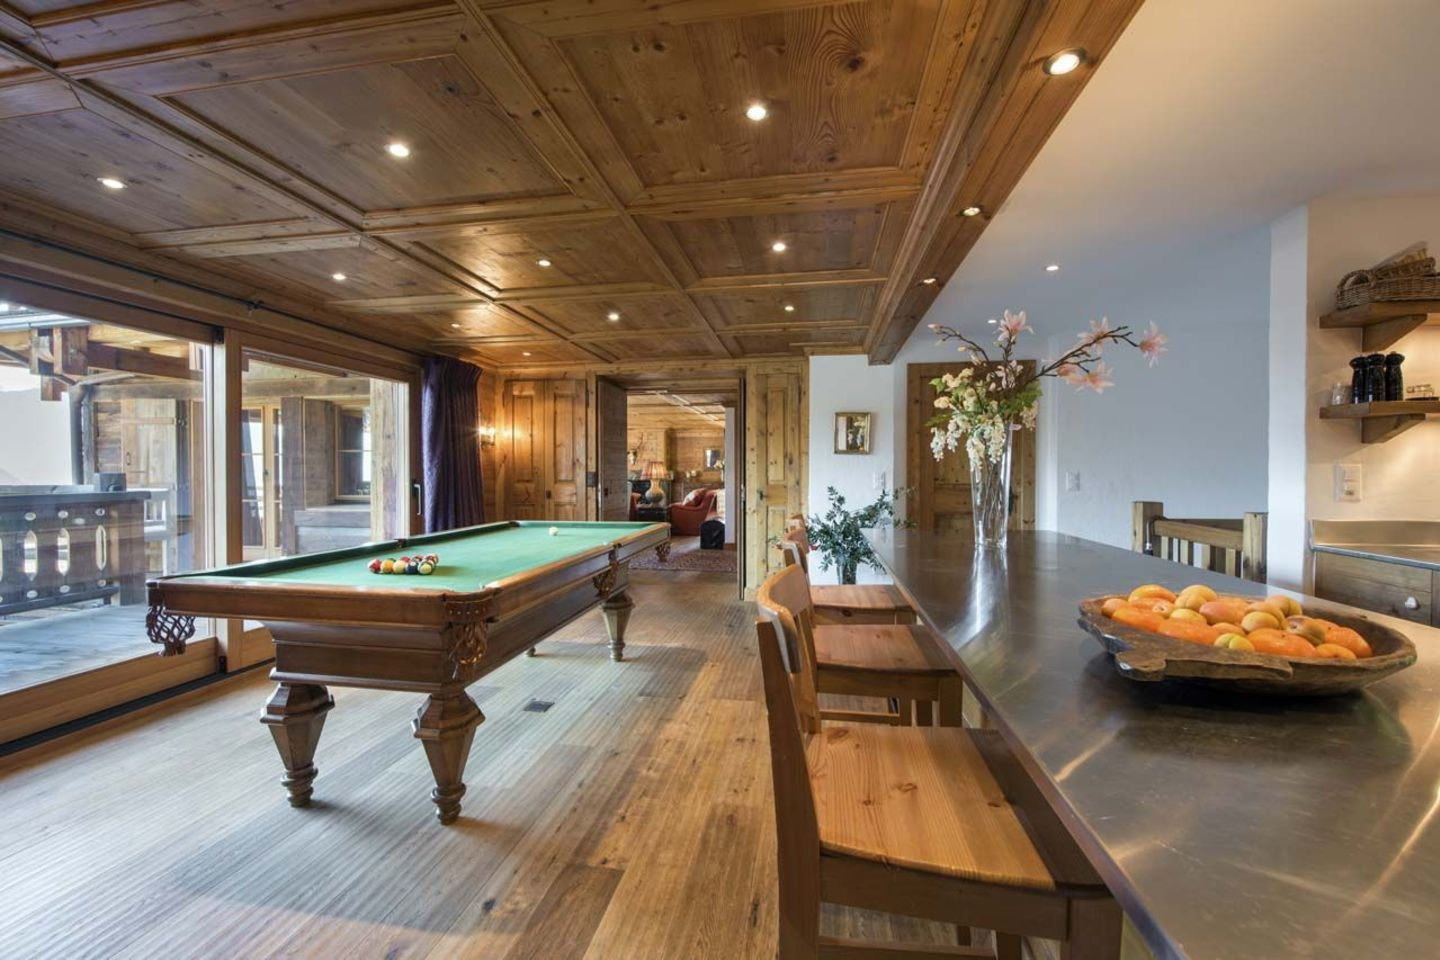 Charmant appartement duplex à Verbier